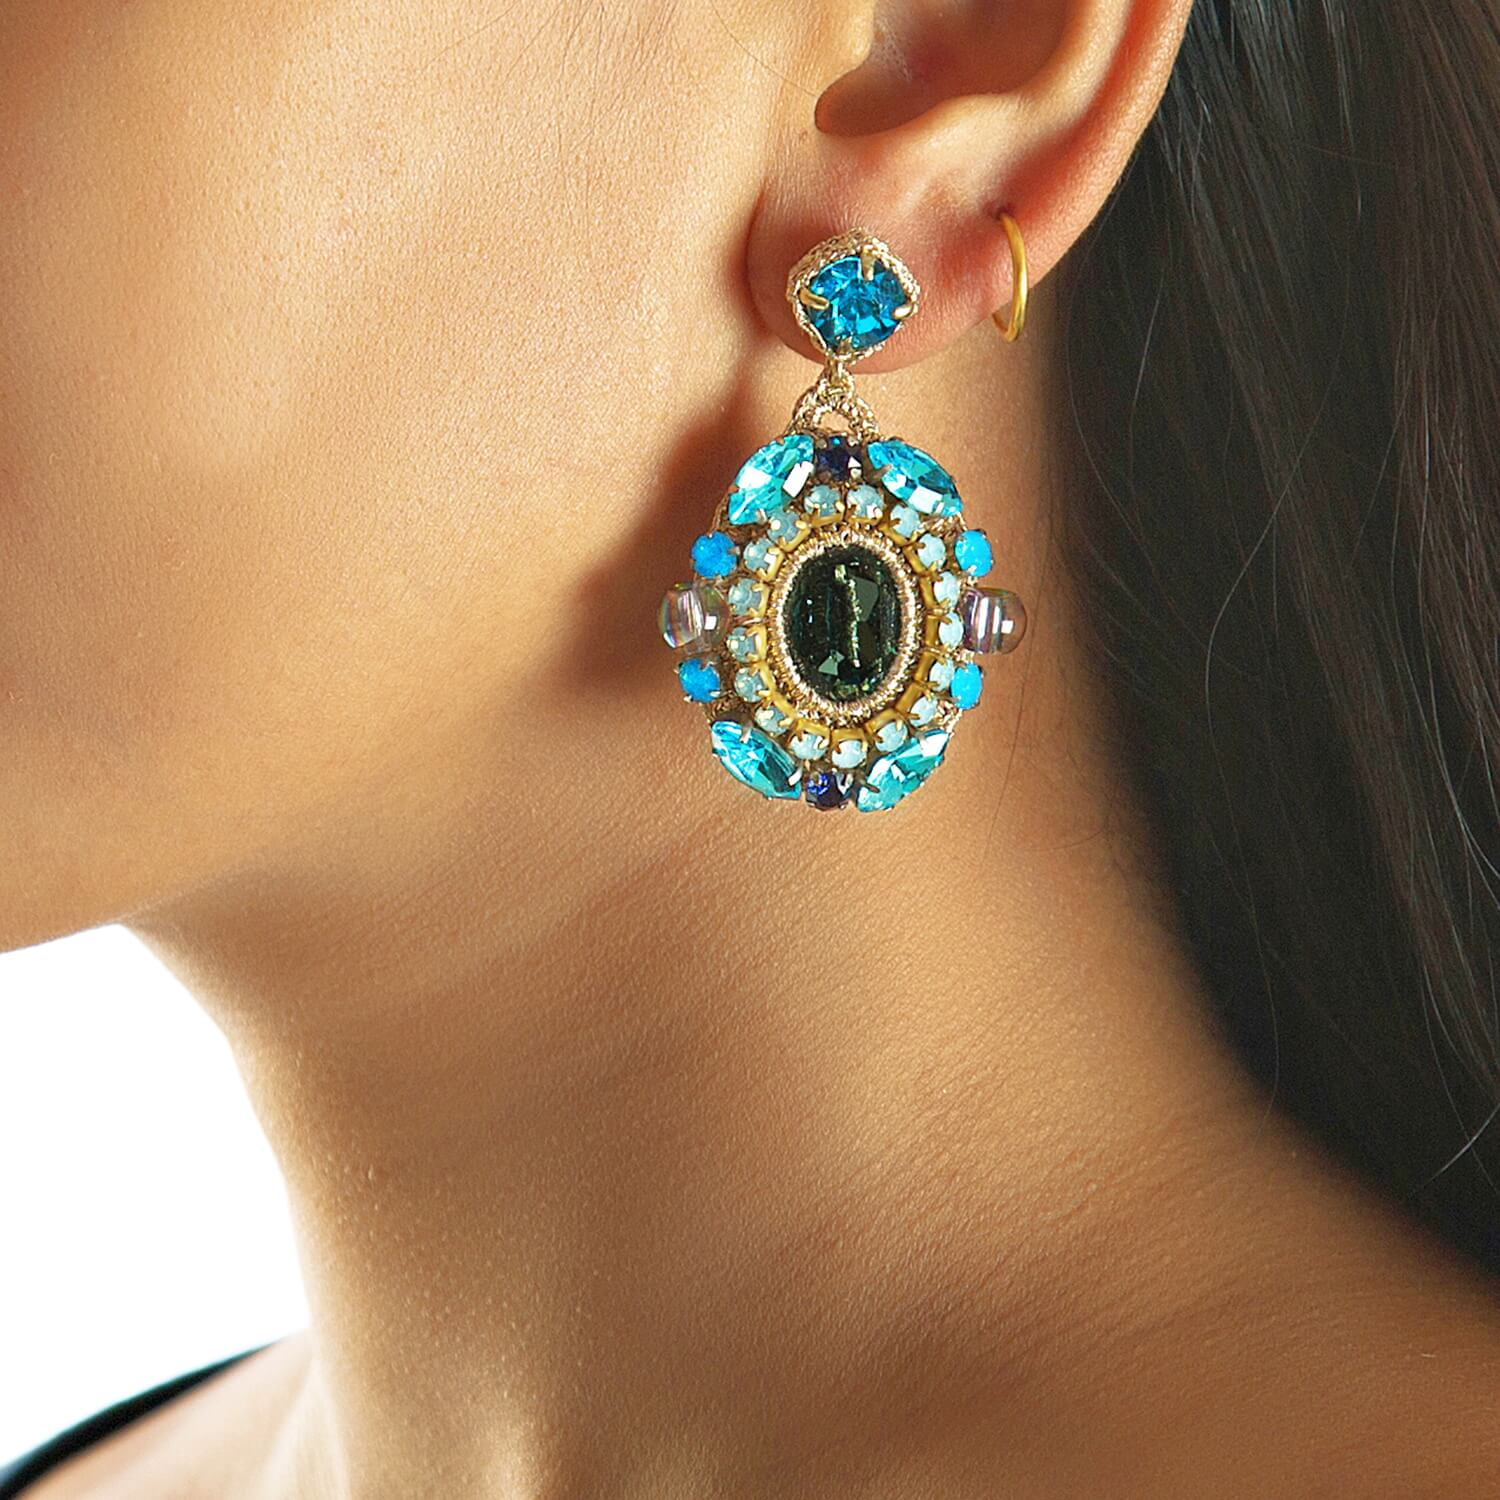 Isolde Aqua Earring - Model